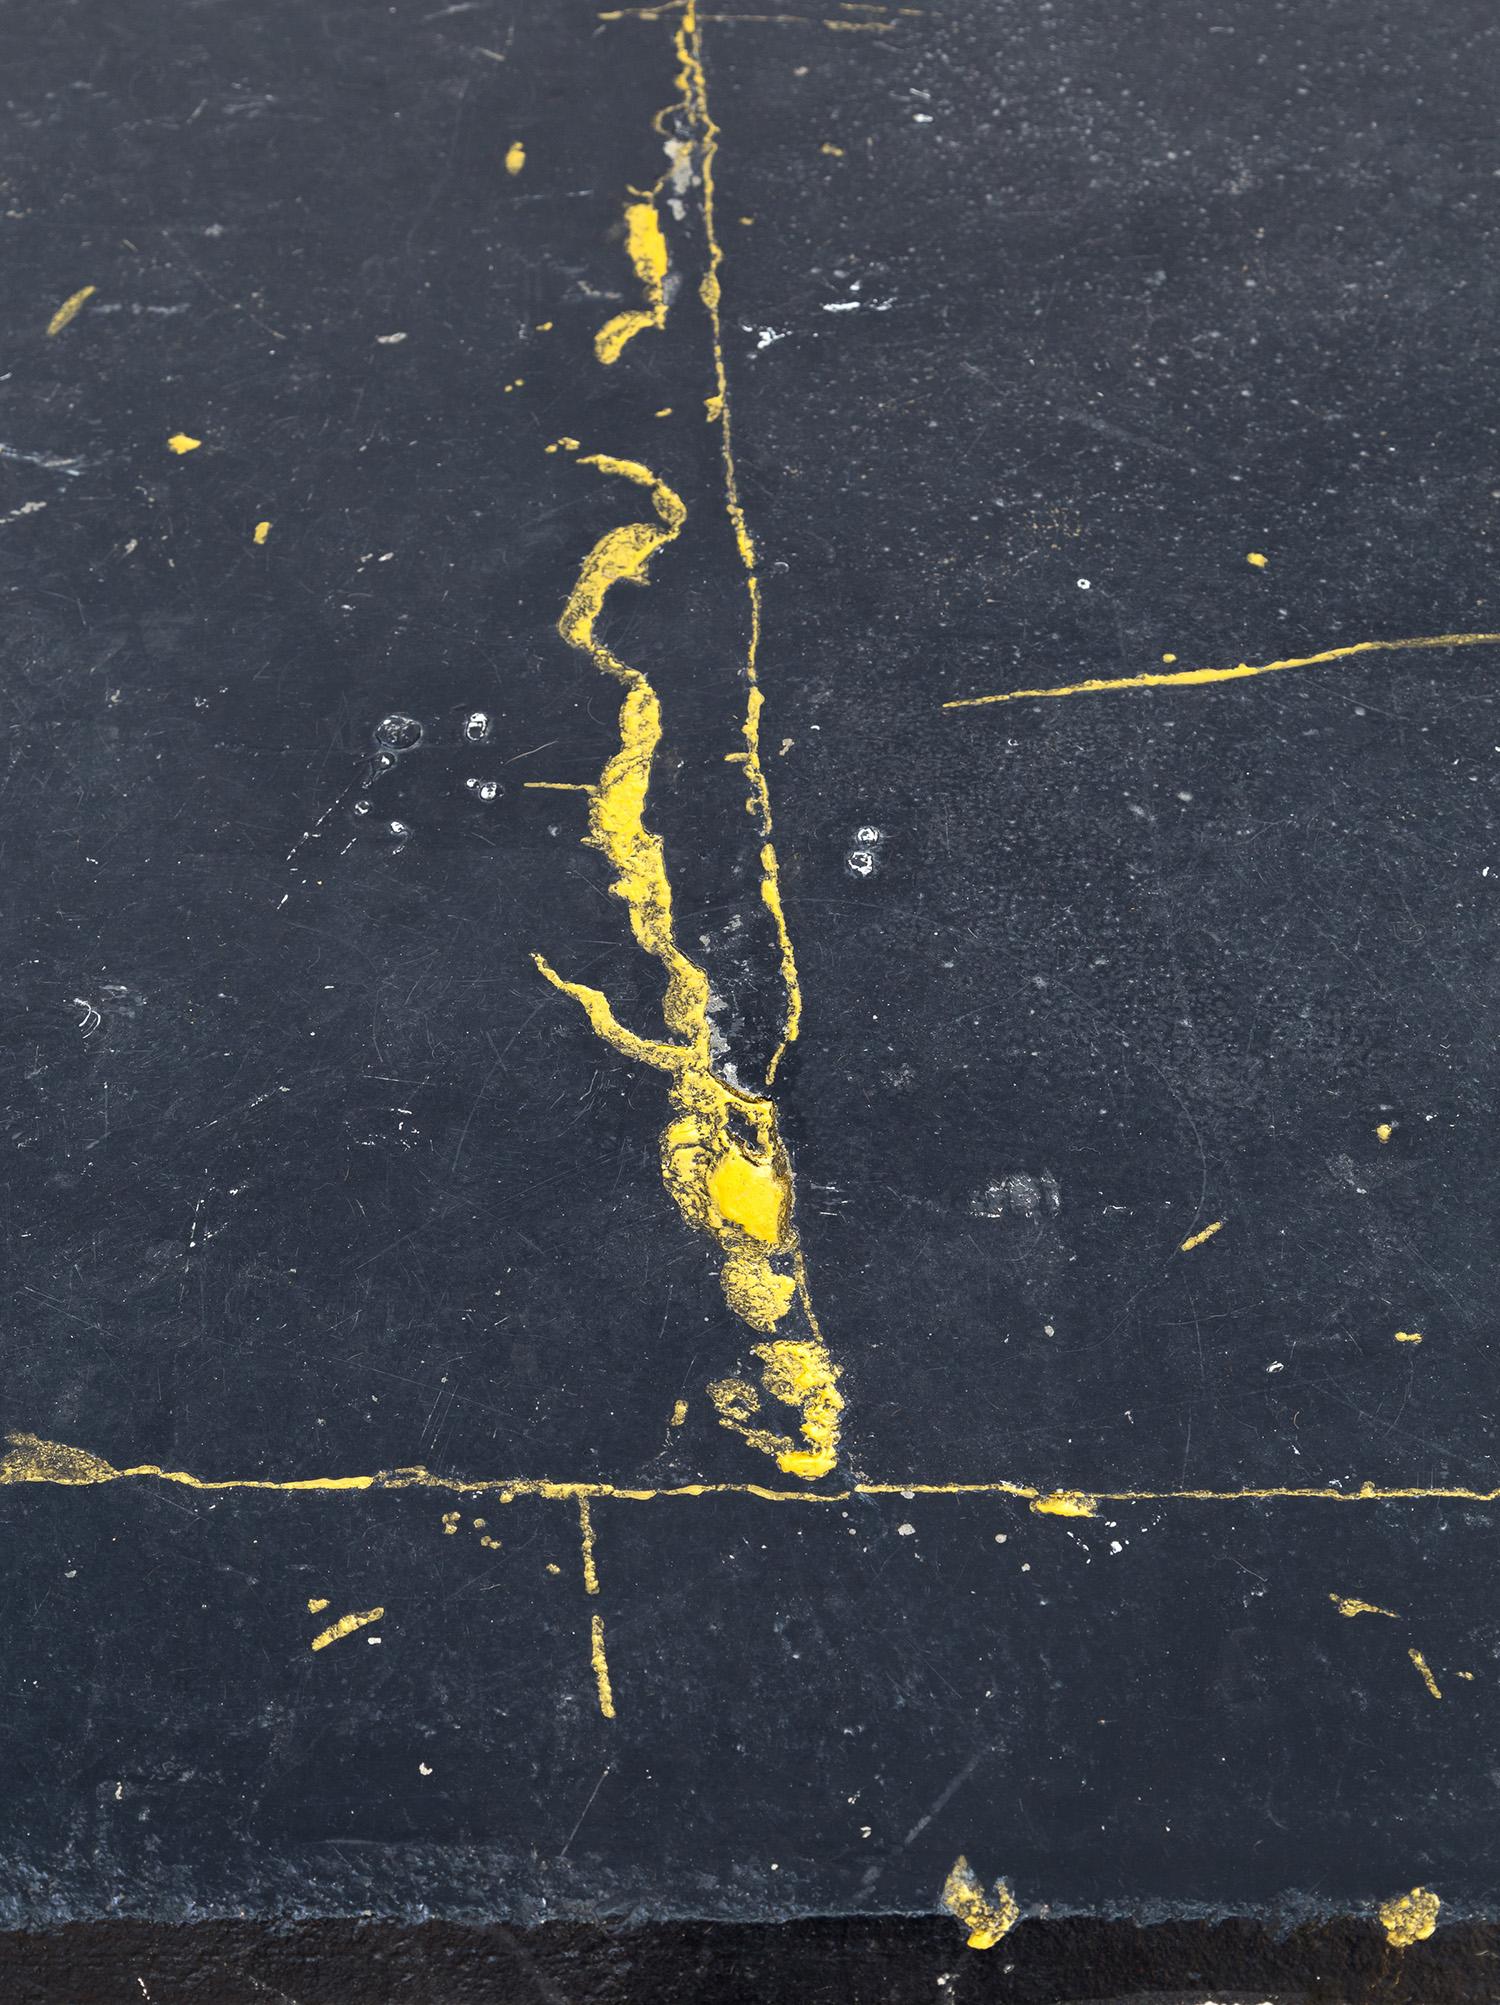 Untitled  (detail), 2019, acrylic in floor cavities, dimensions variable.  Image: André Piguet